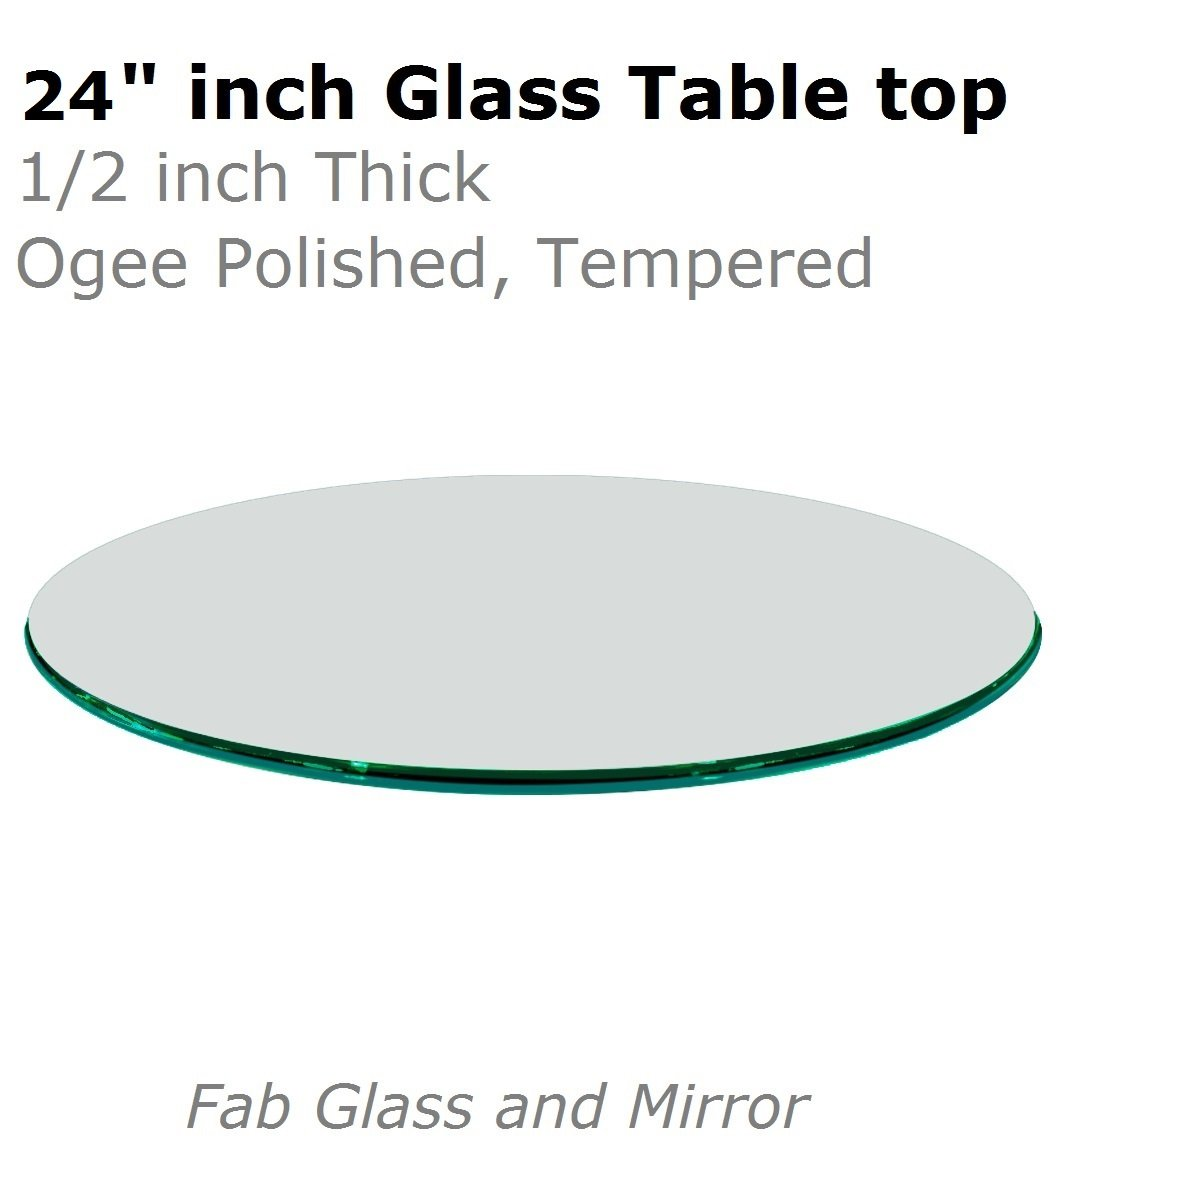 Fab Glass and Mirror T-24RD12MMOGTE 24'' Clear Round 1/2'' Inch Thick Tempered Ogee Edge Polish Glass Table Top